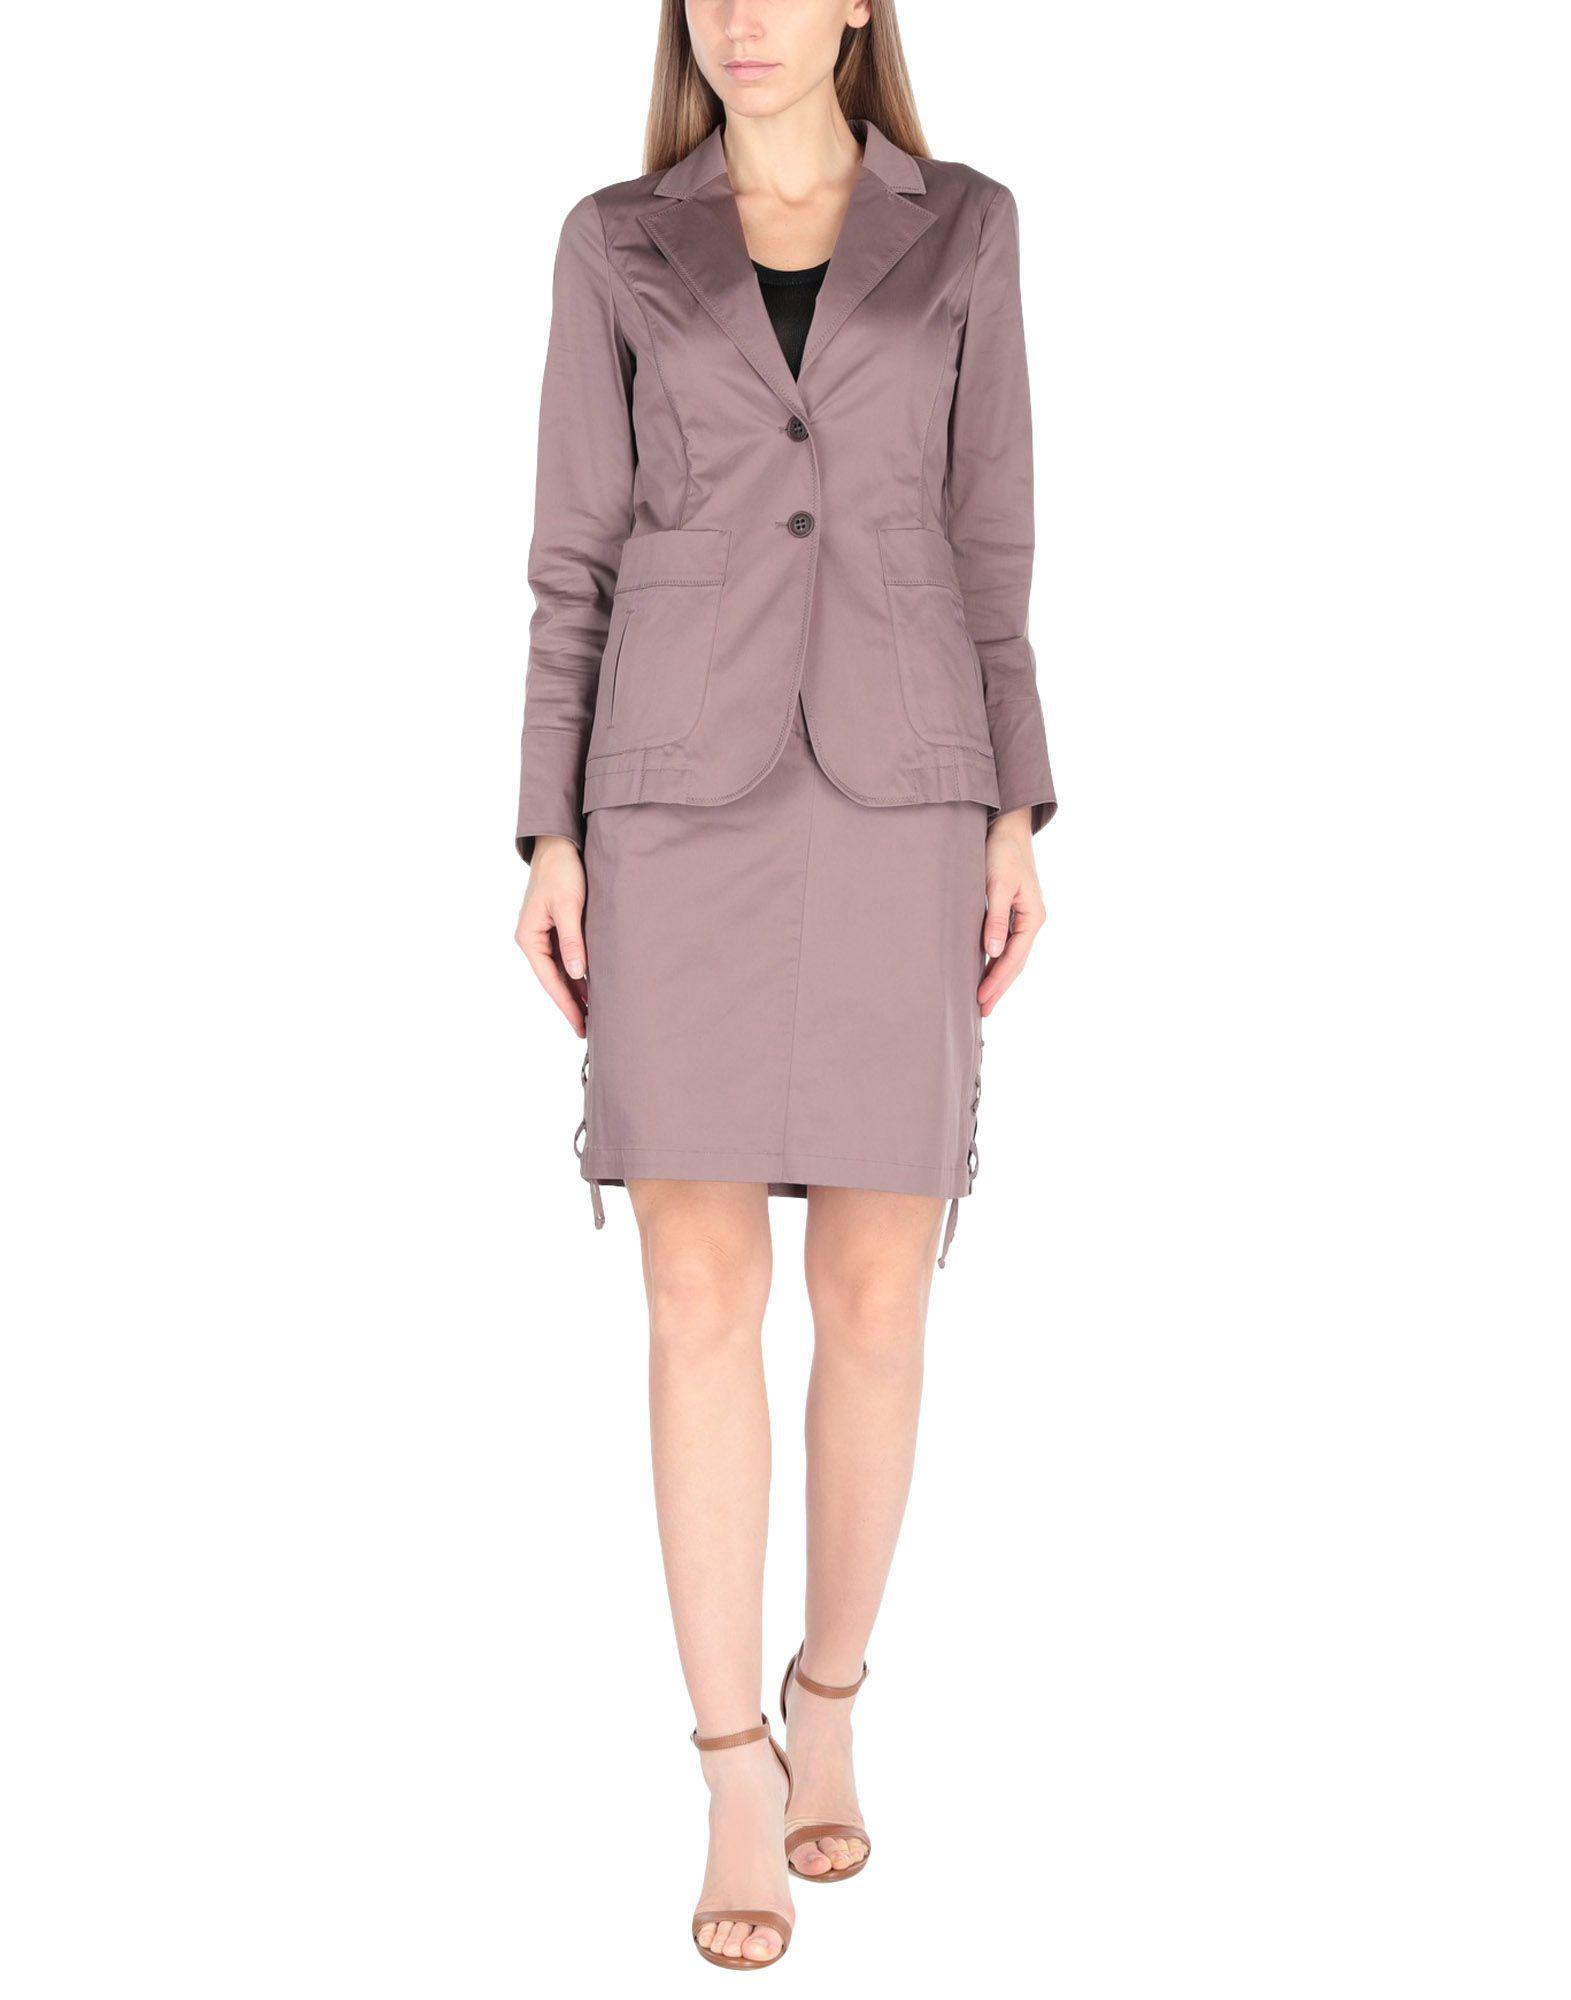 Lyst Pennyblack Women S Suit In Purple